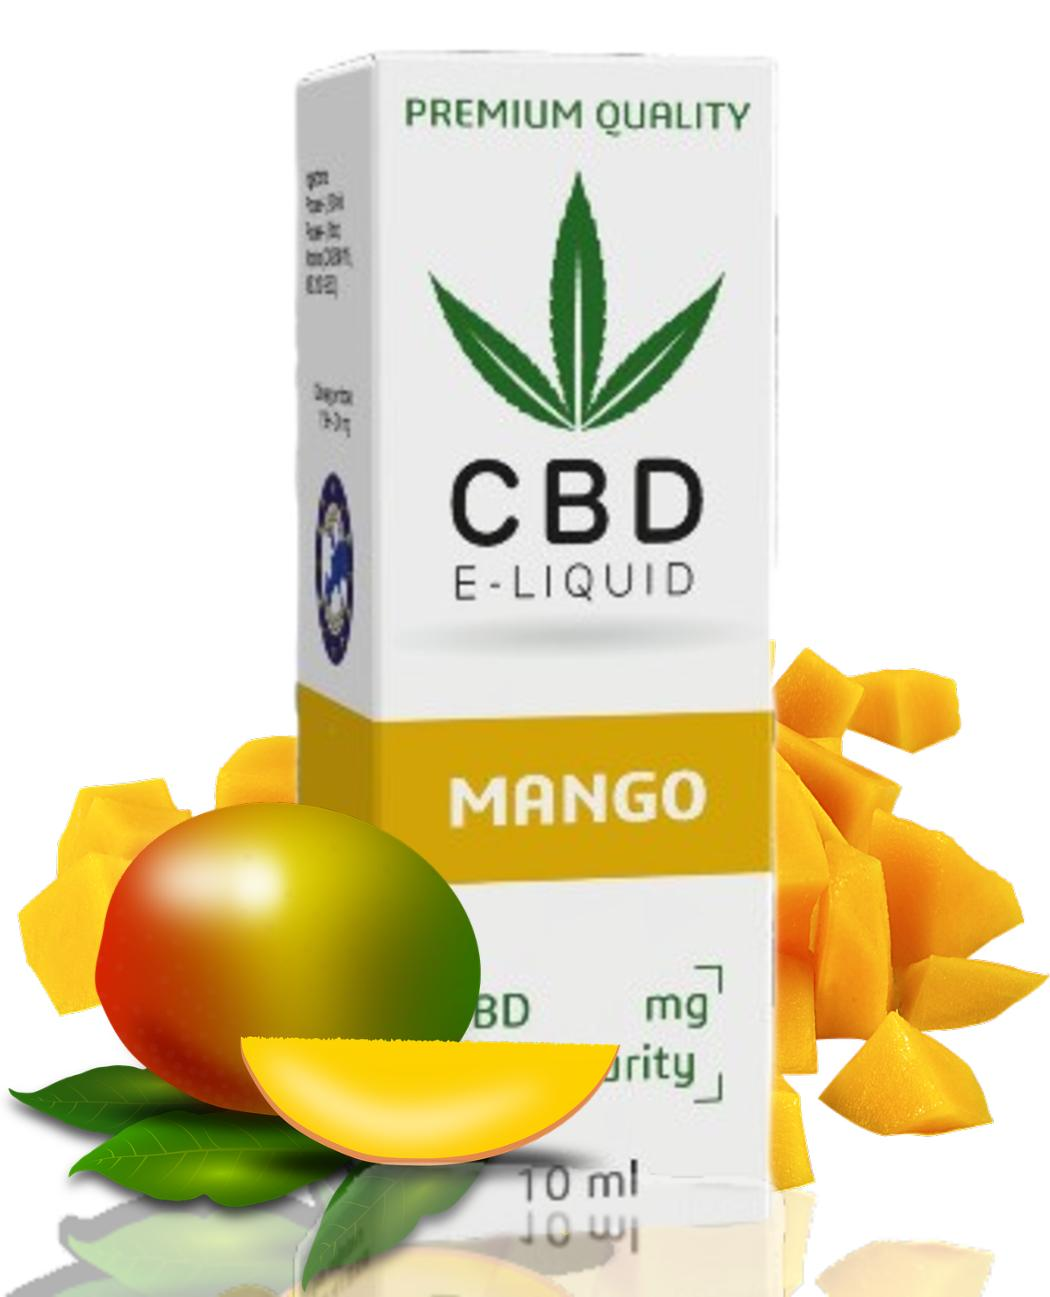 10 ml CBD Vape Liquid - Mango 300mg (3%)